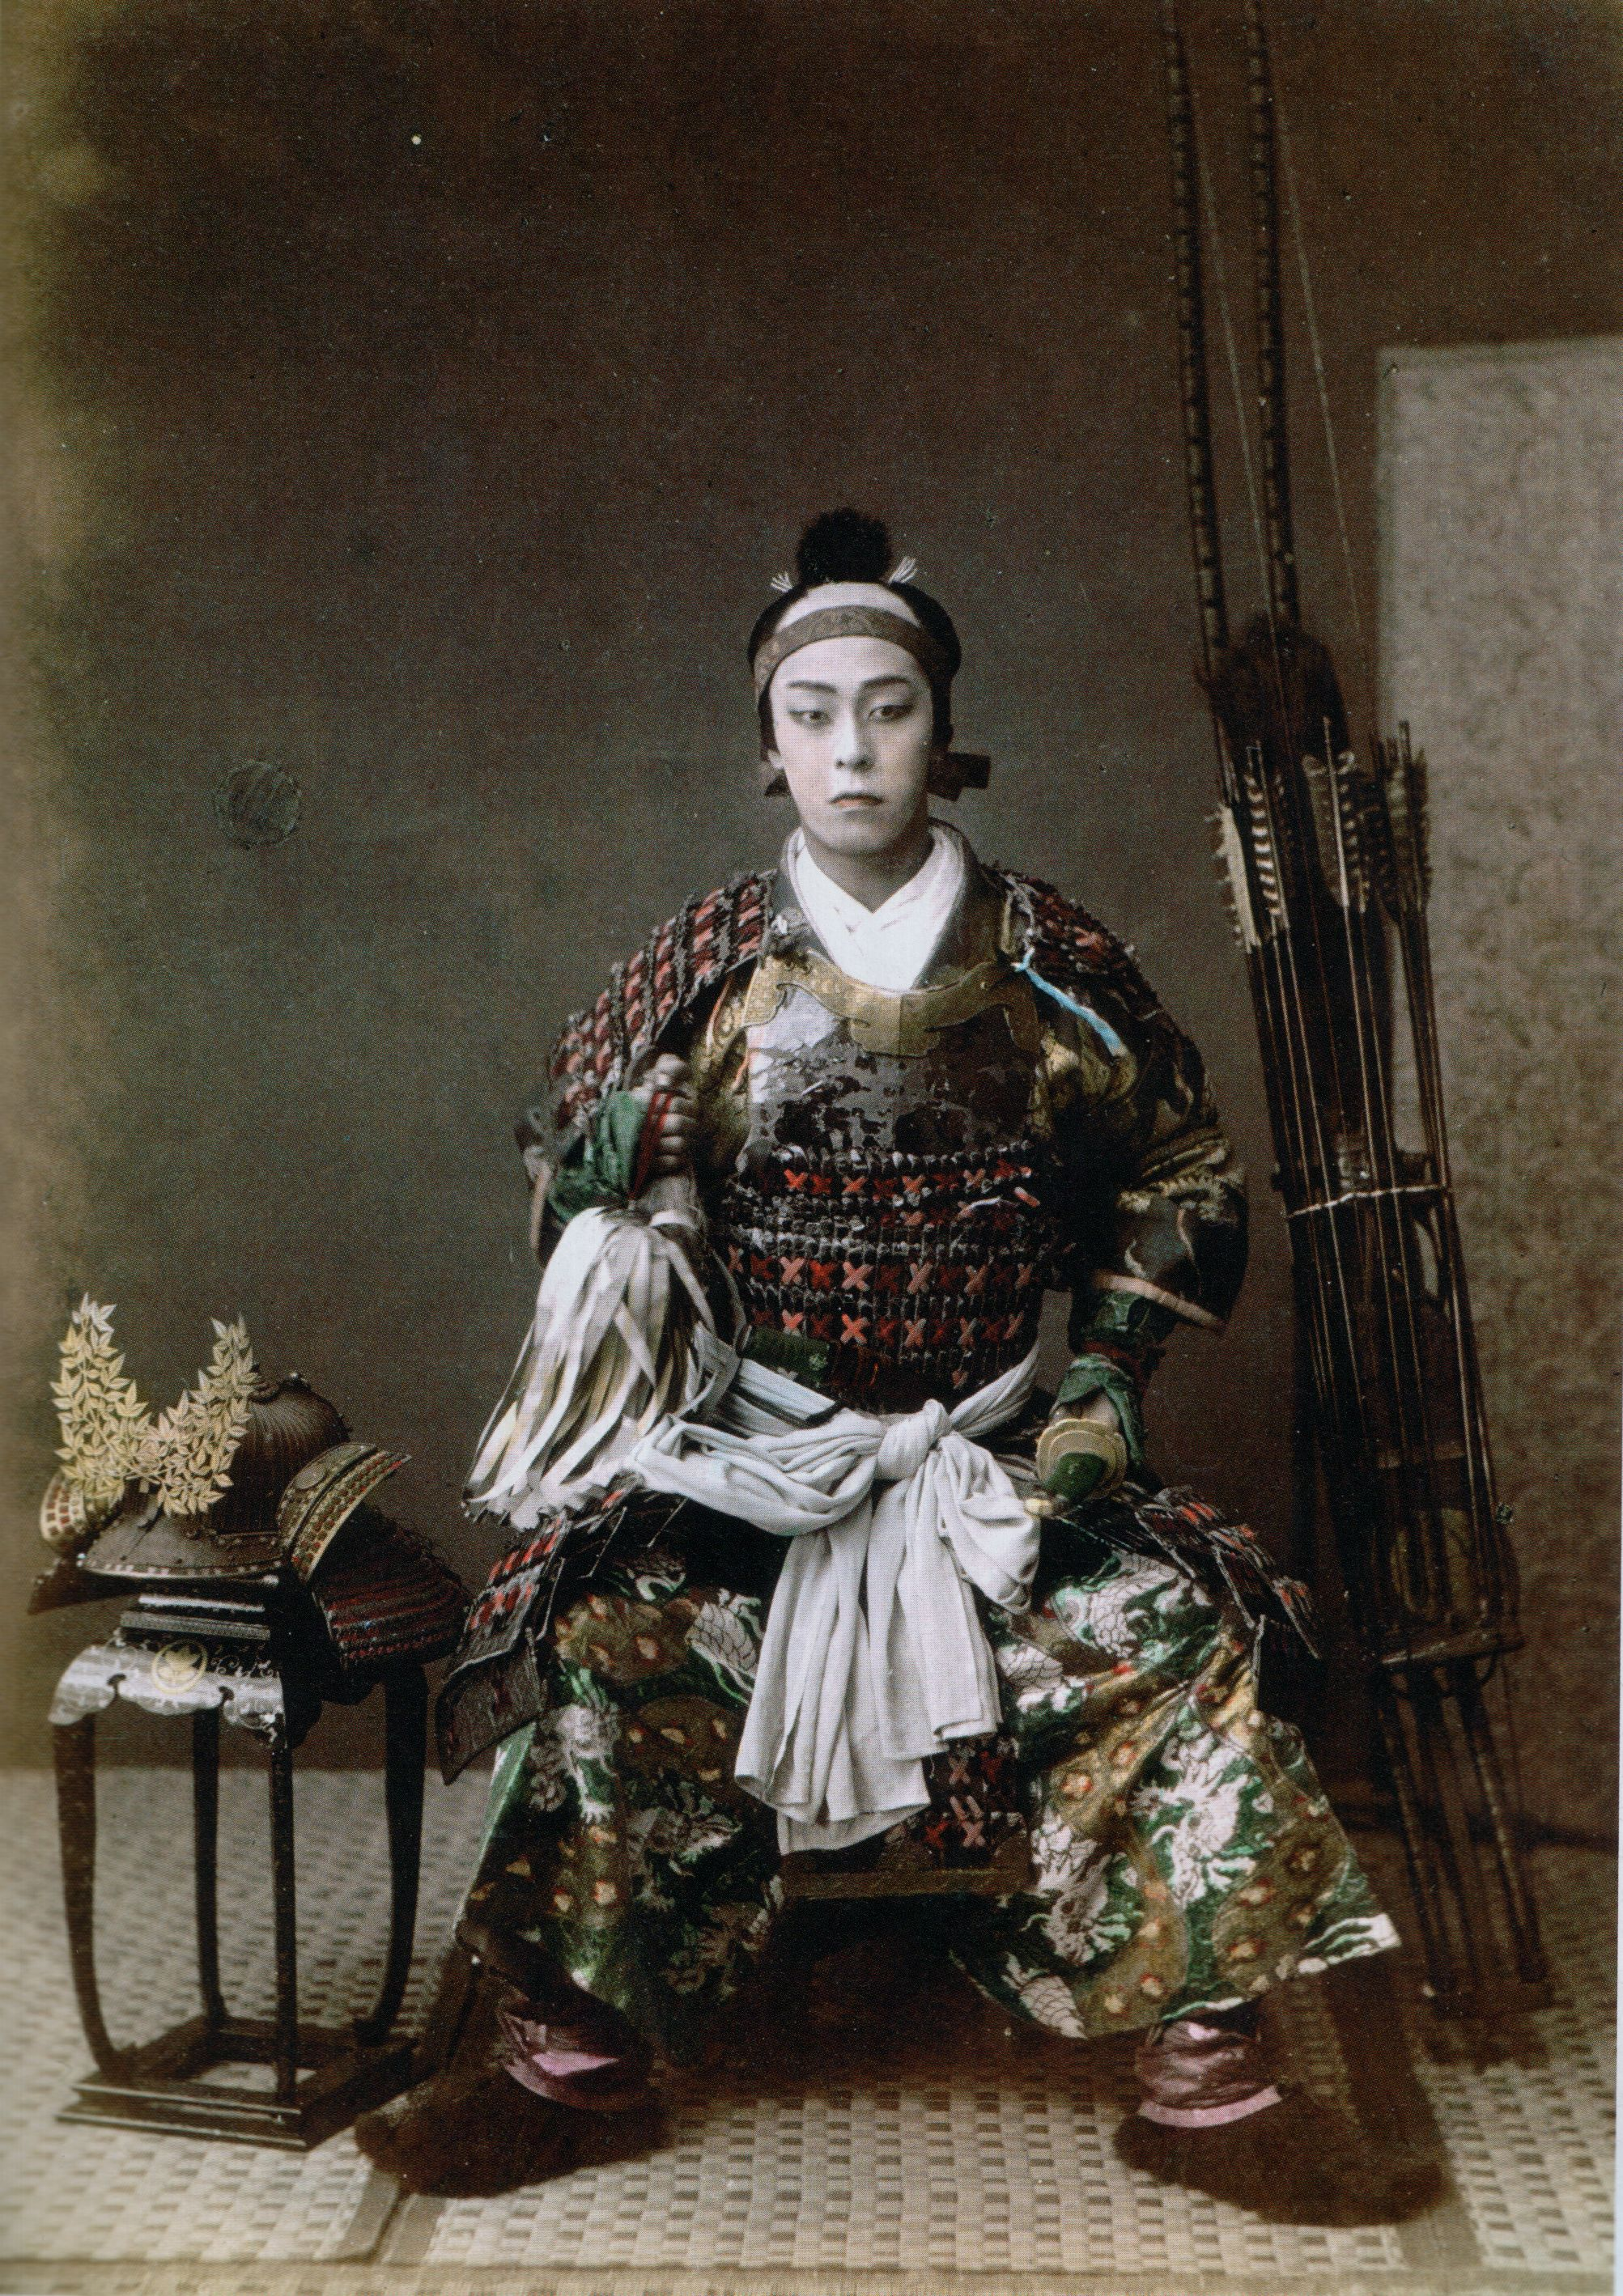 File:Samourai photo 1867.jpg